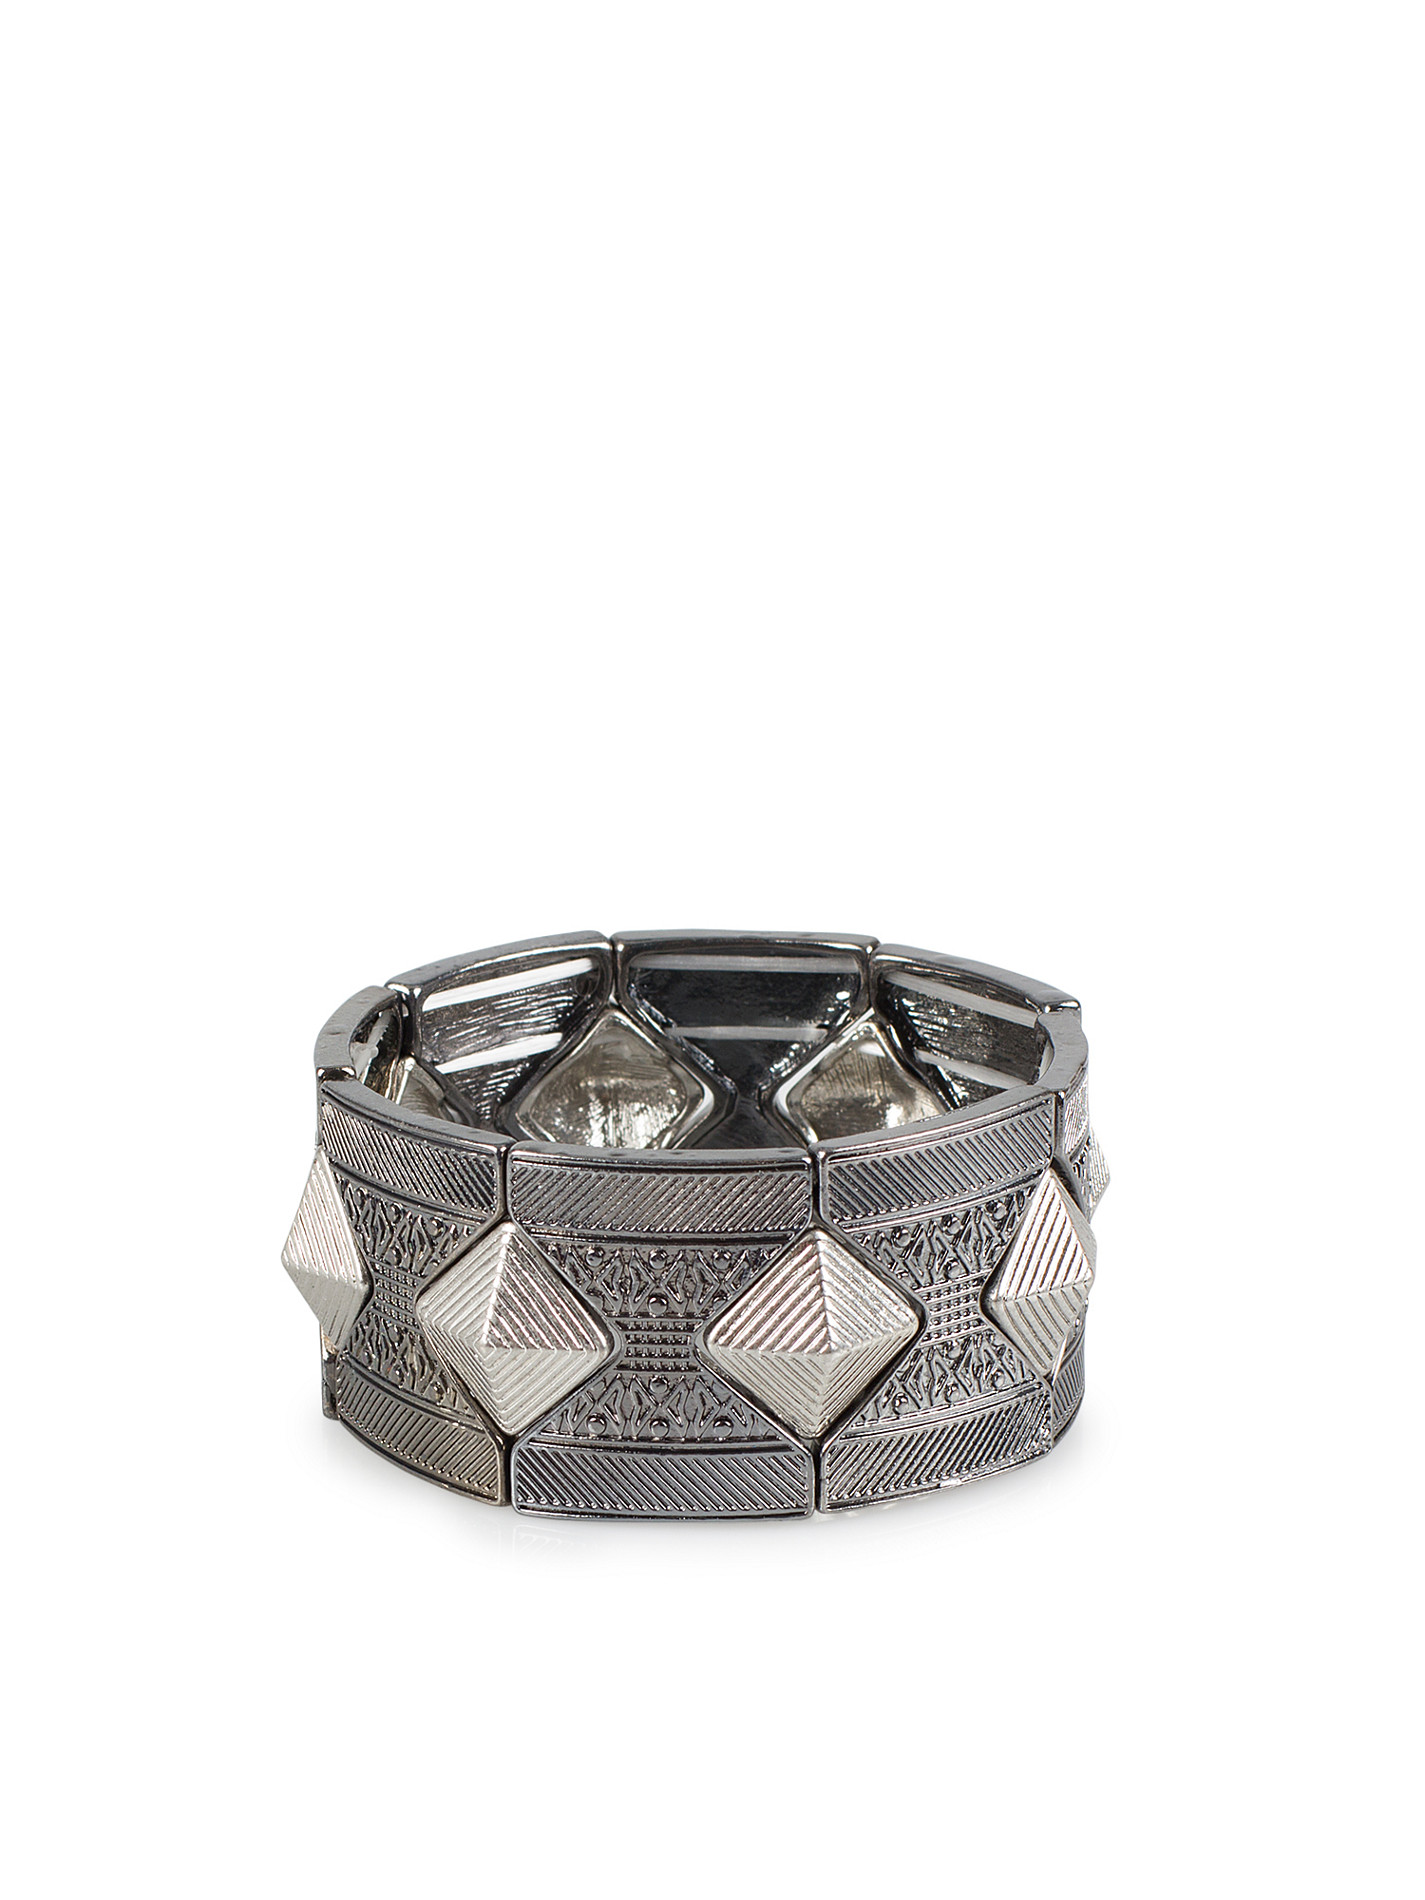 Armband Herfst 2014